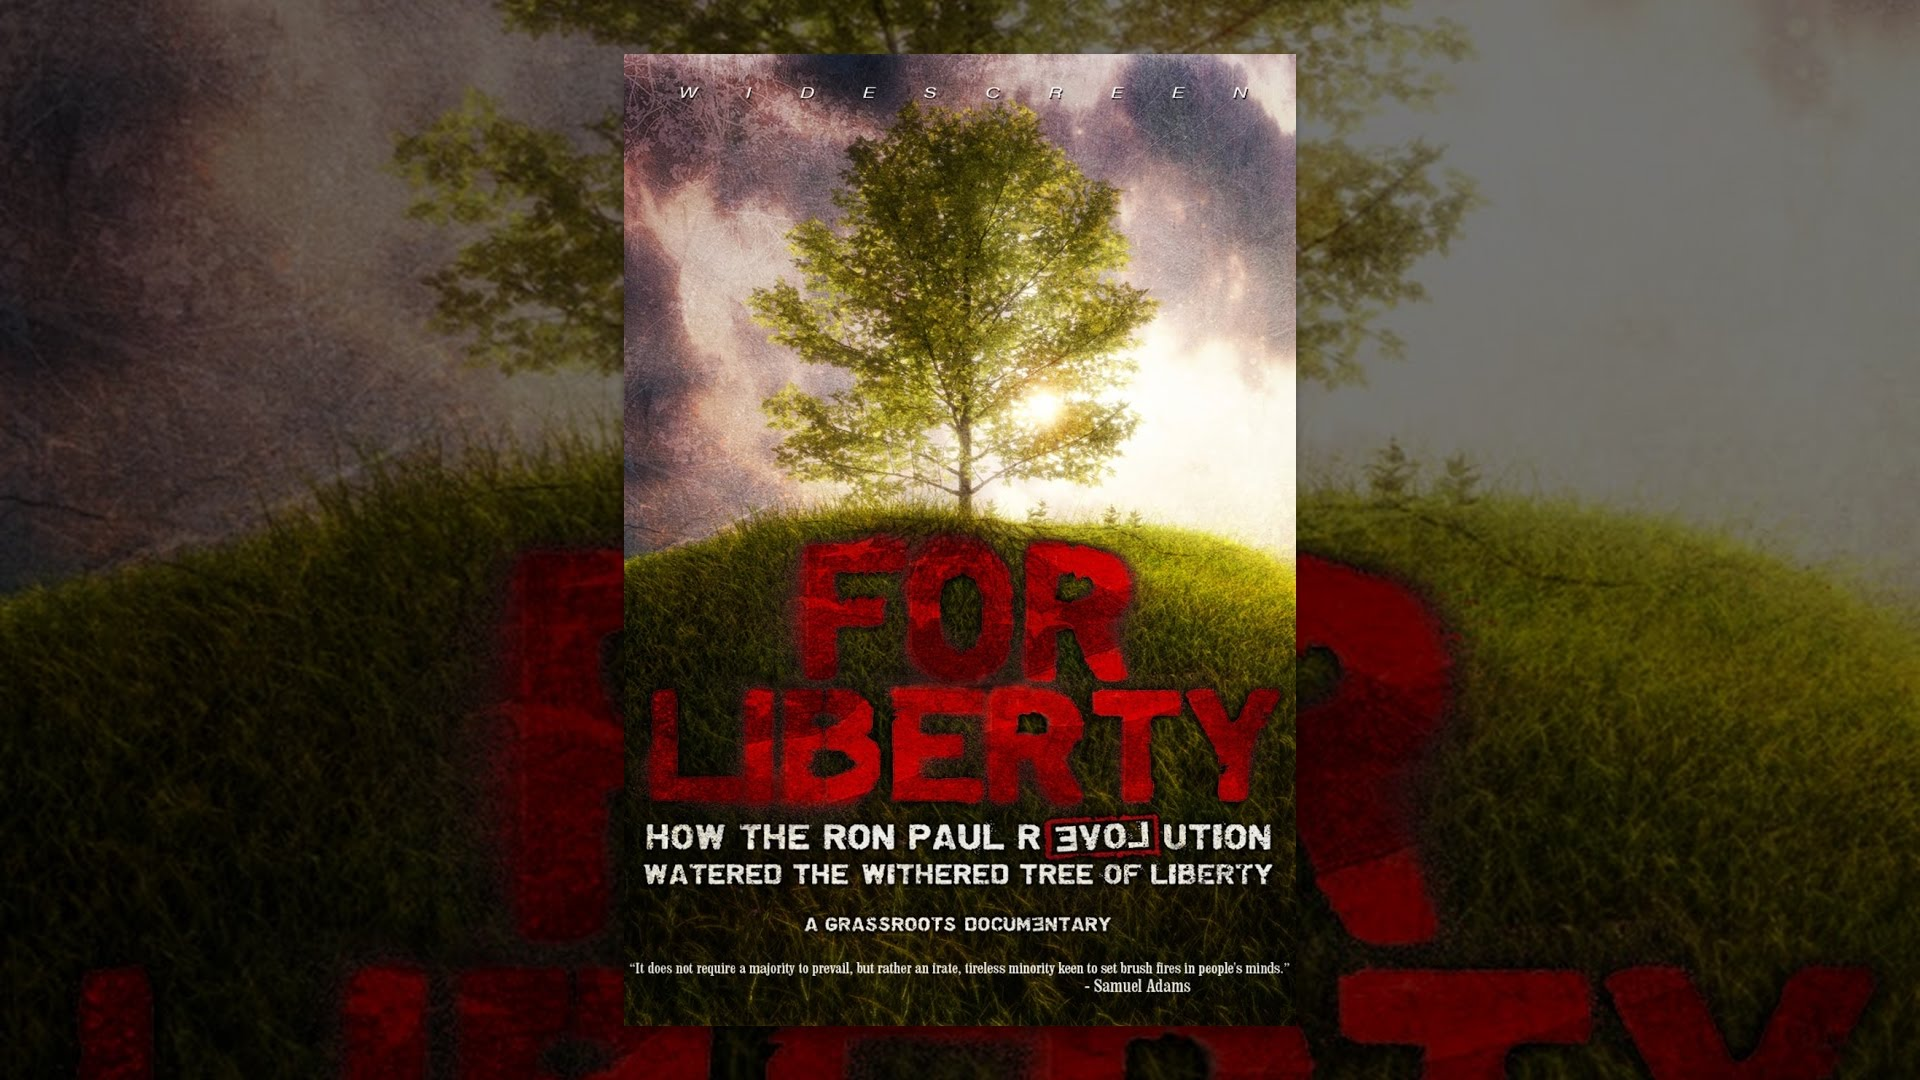 For Liberty: How the Ron Paul Revolution Watered the Tree of Liberty - YouTube